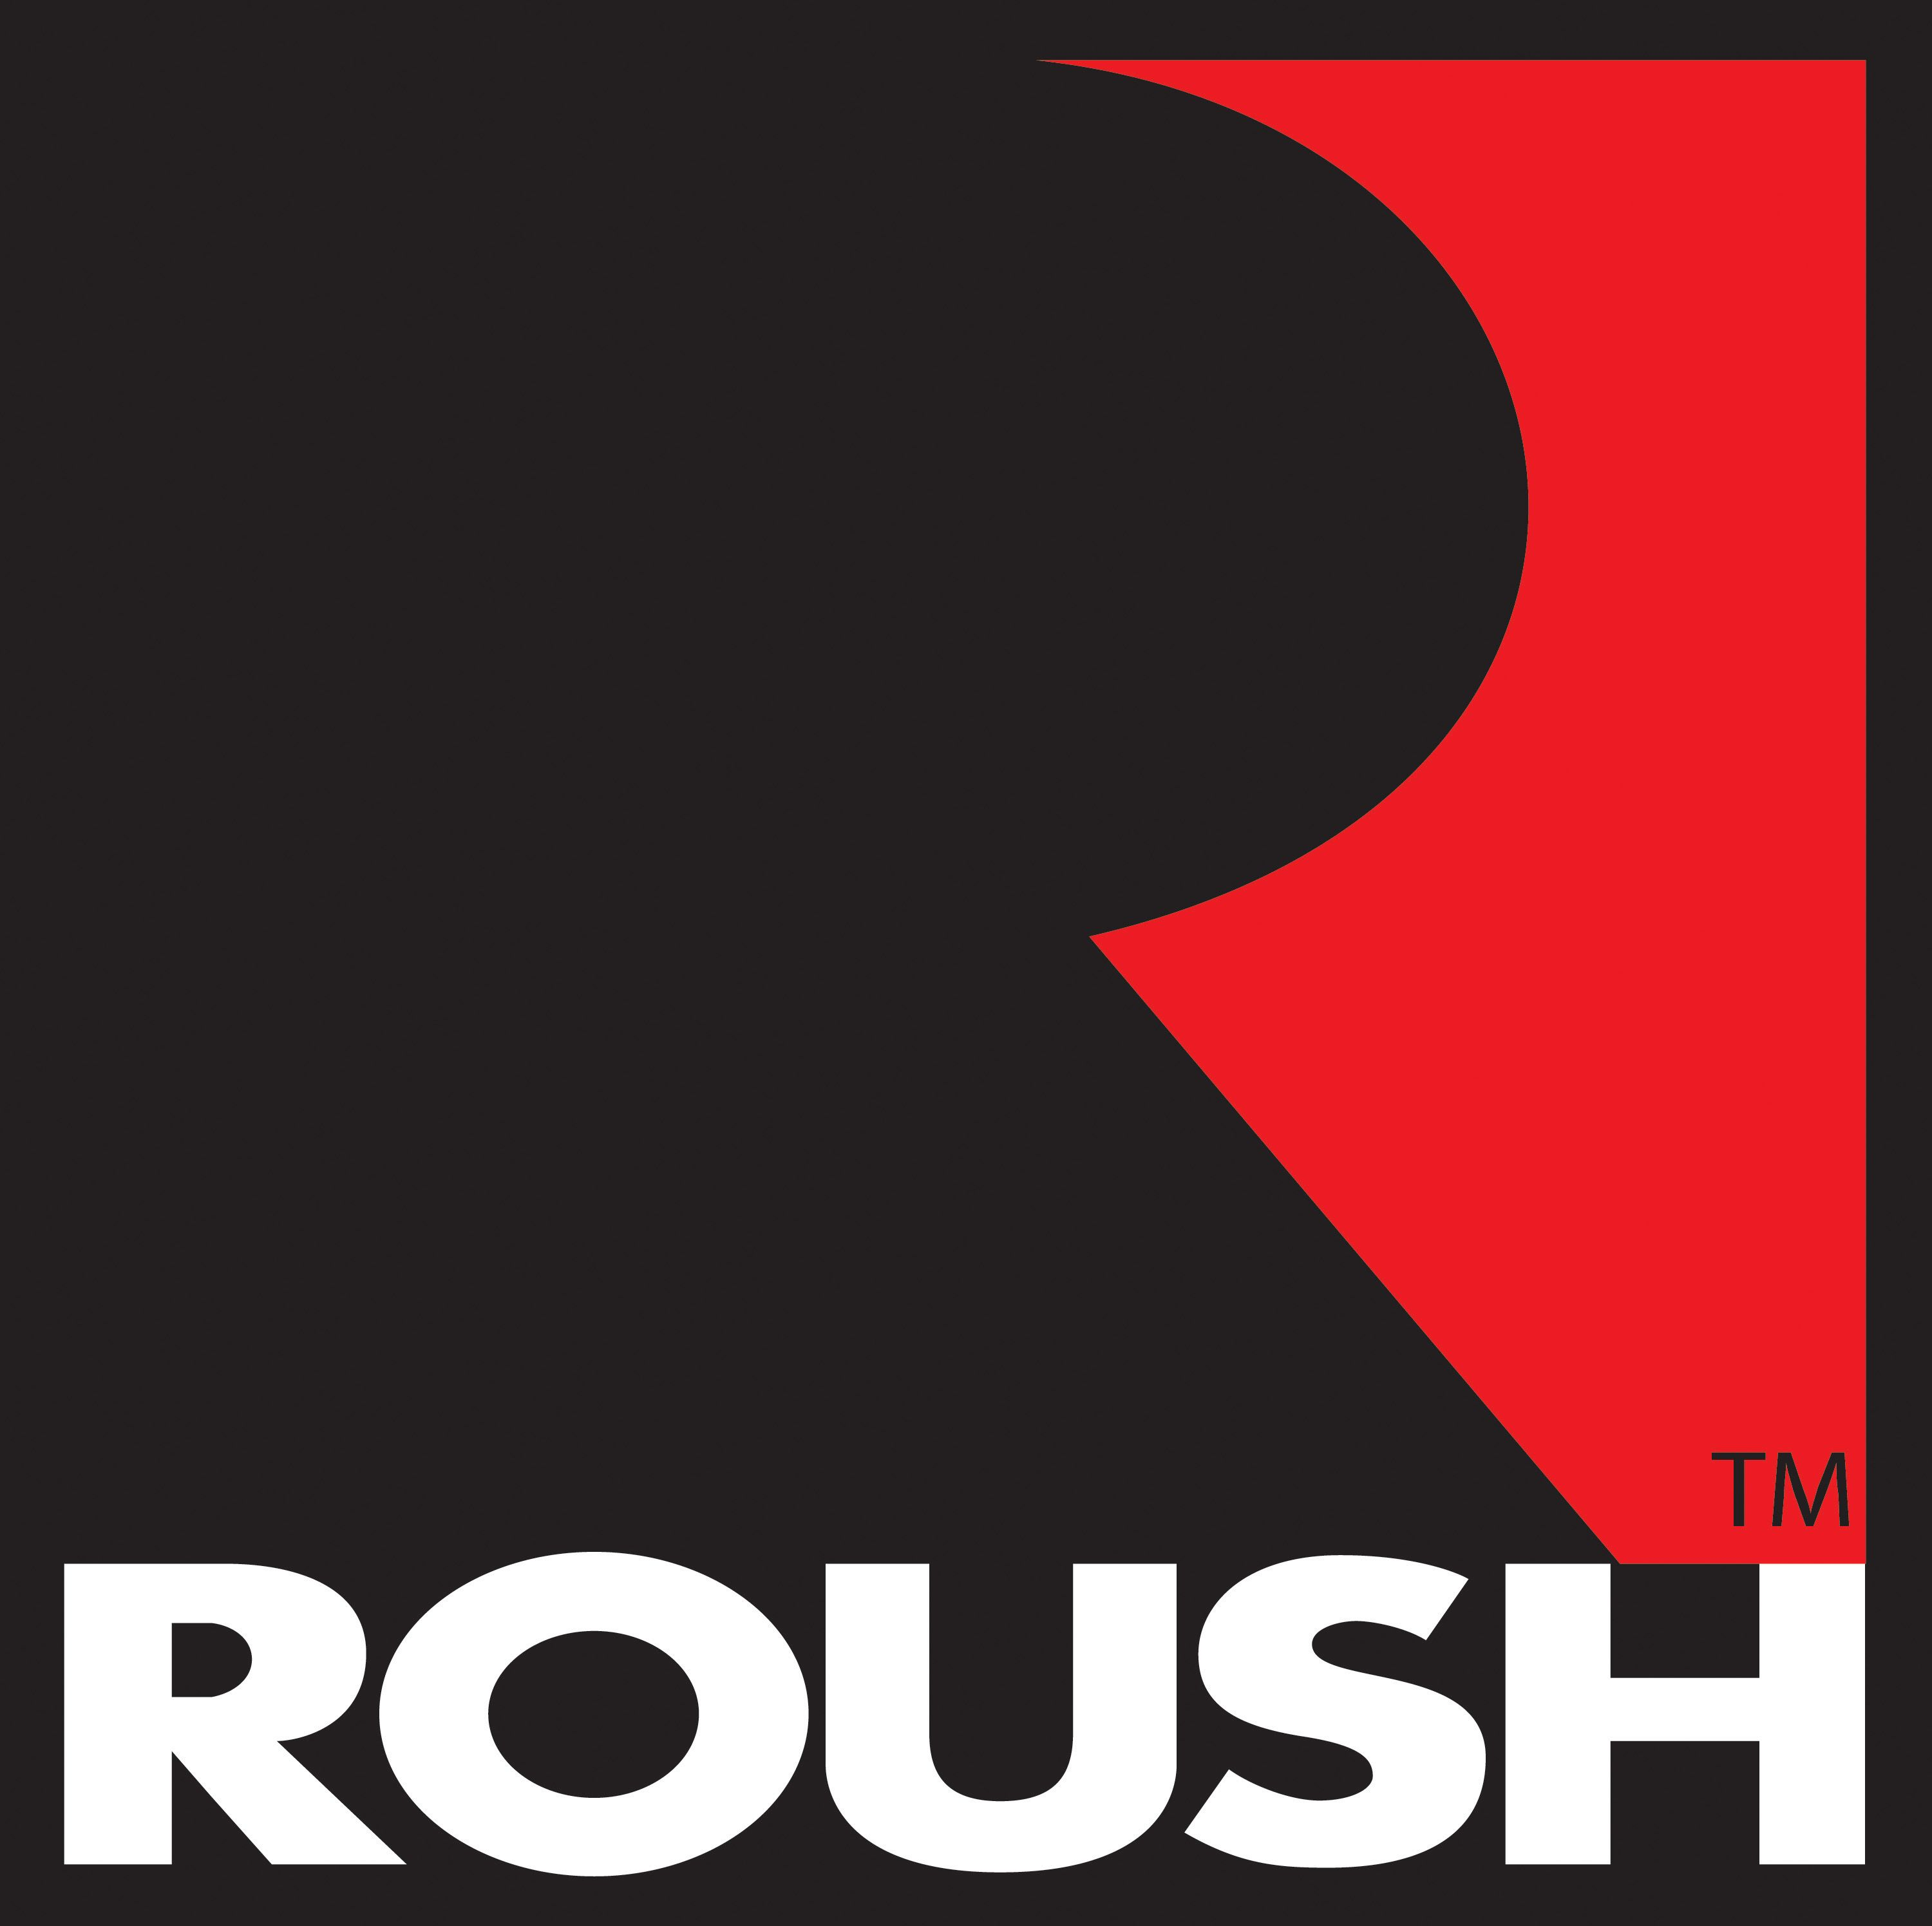 ROUSH Performance Logo - Pinned by Tindol Ford of Gastonia. We are North Carolina's authorized ROUSH Mustang dealership. http://tindolford.com/